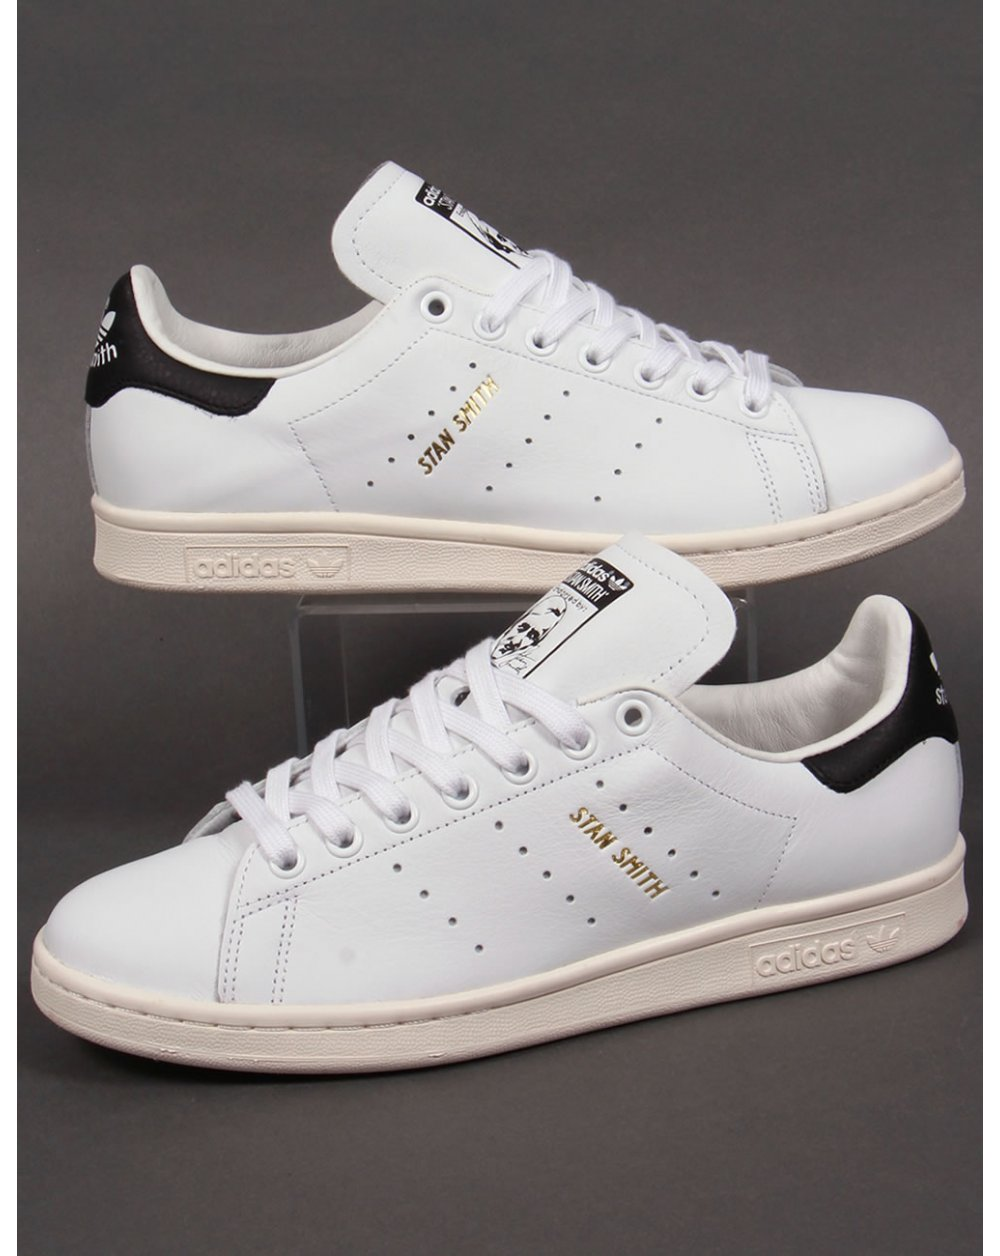 Adidas Stan Smith Black Gold